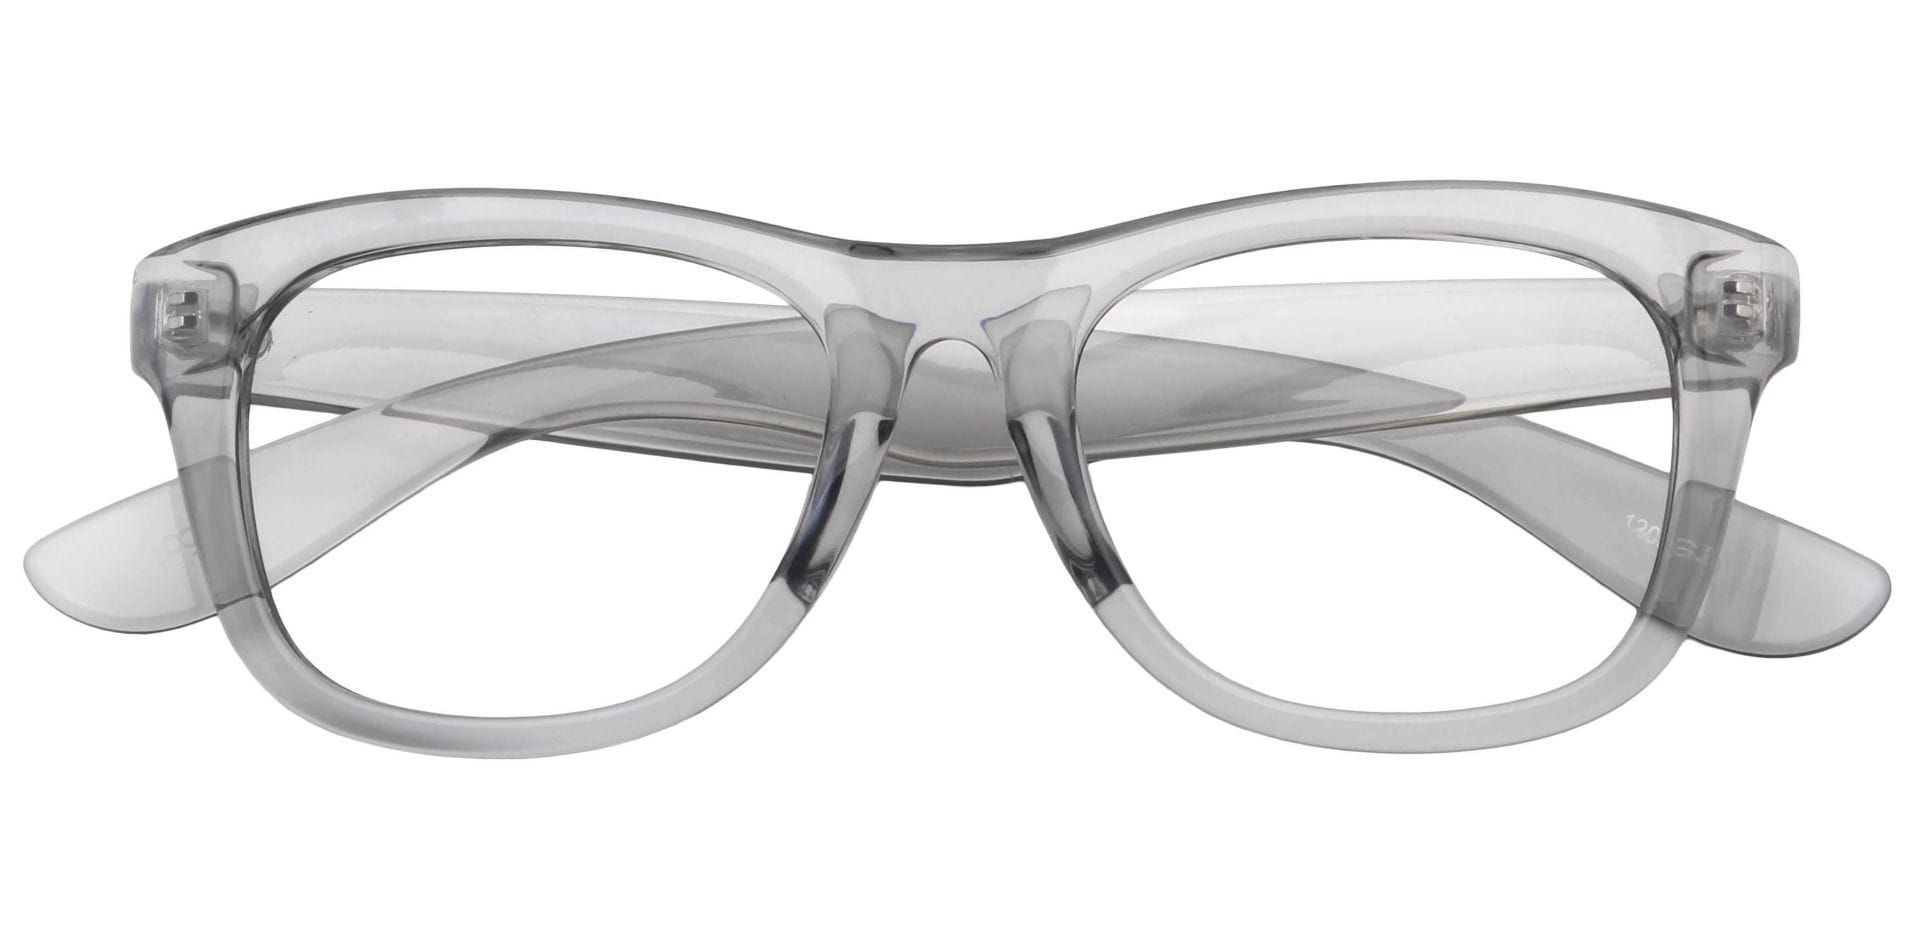 Callie Square Lined Bifocal Glasses - Gray